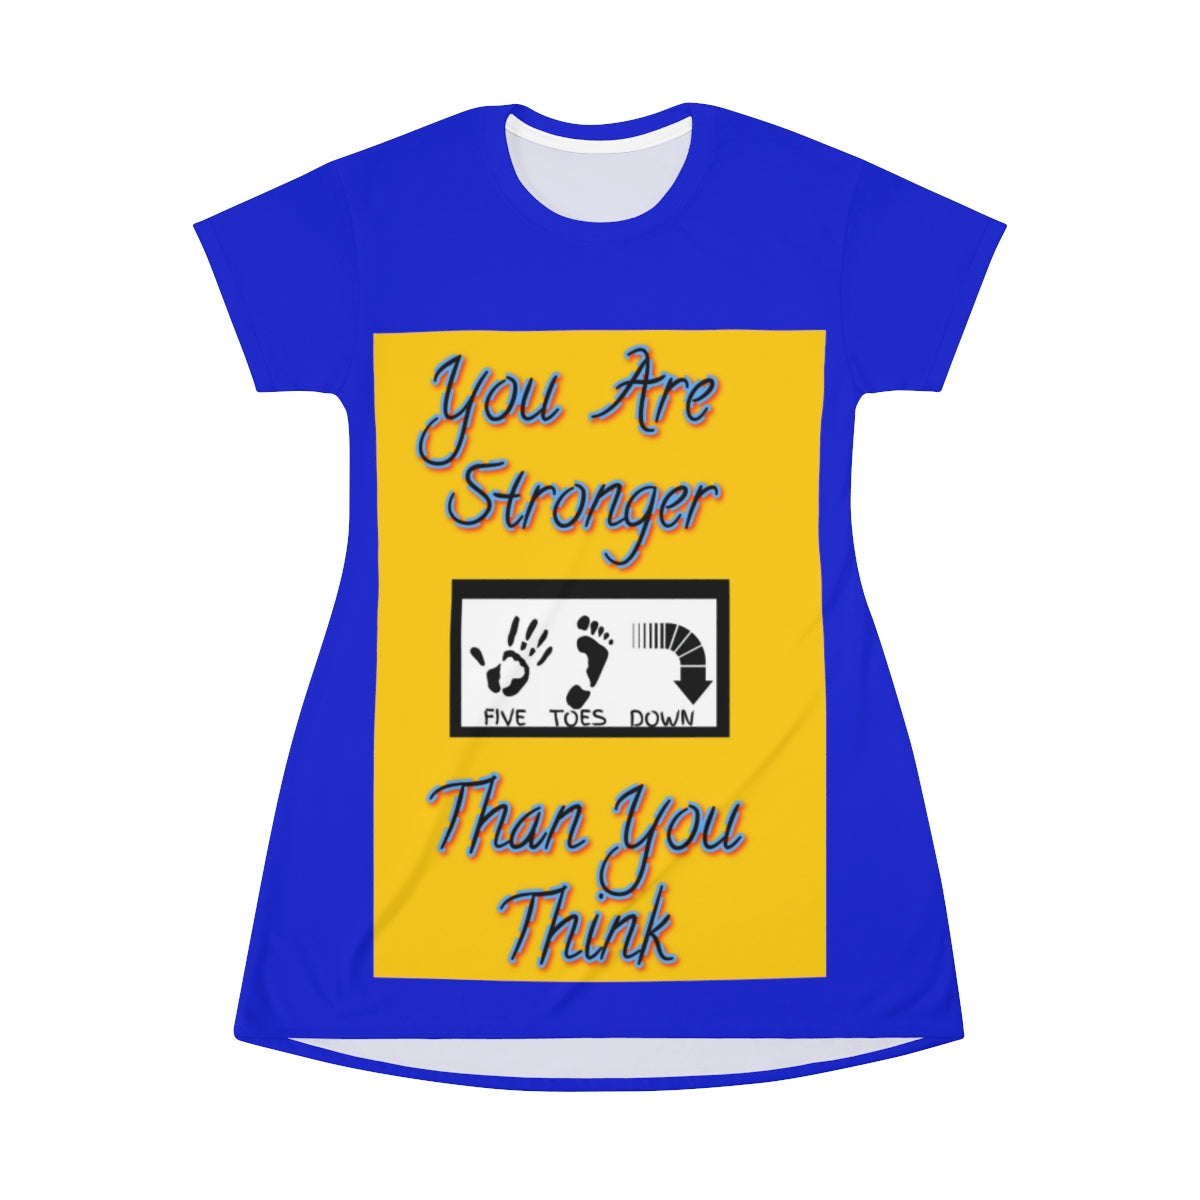 Five Toes Down You Are Stronger T-shirt Dress